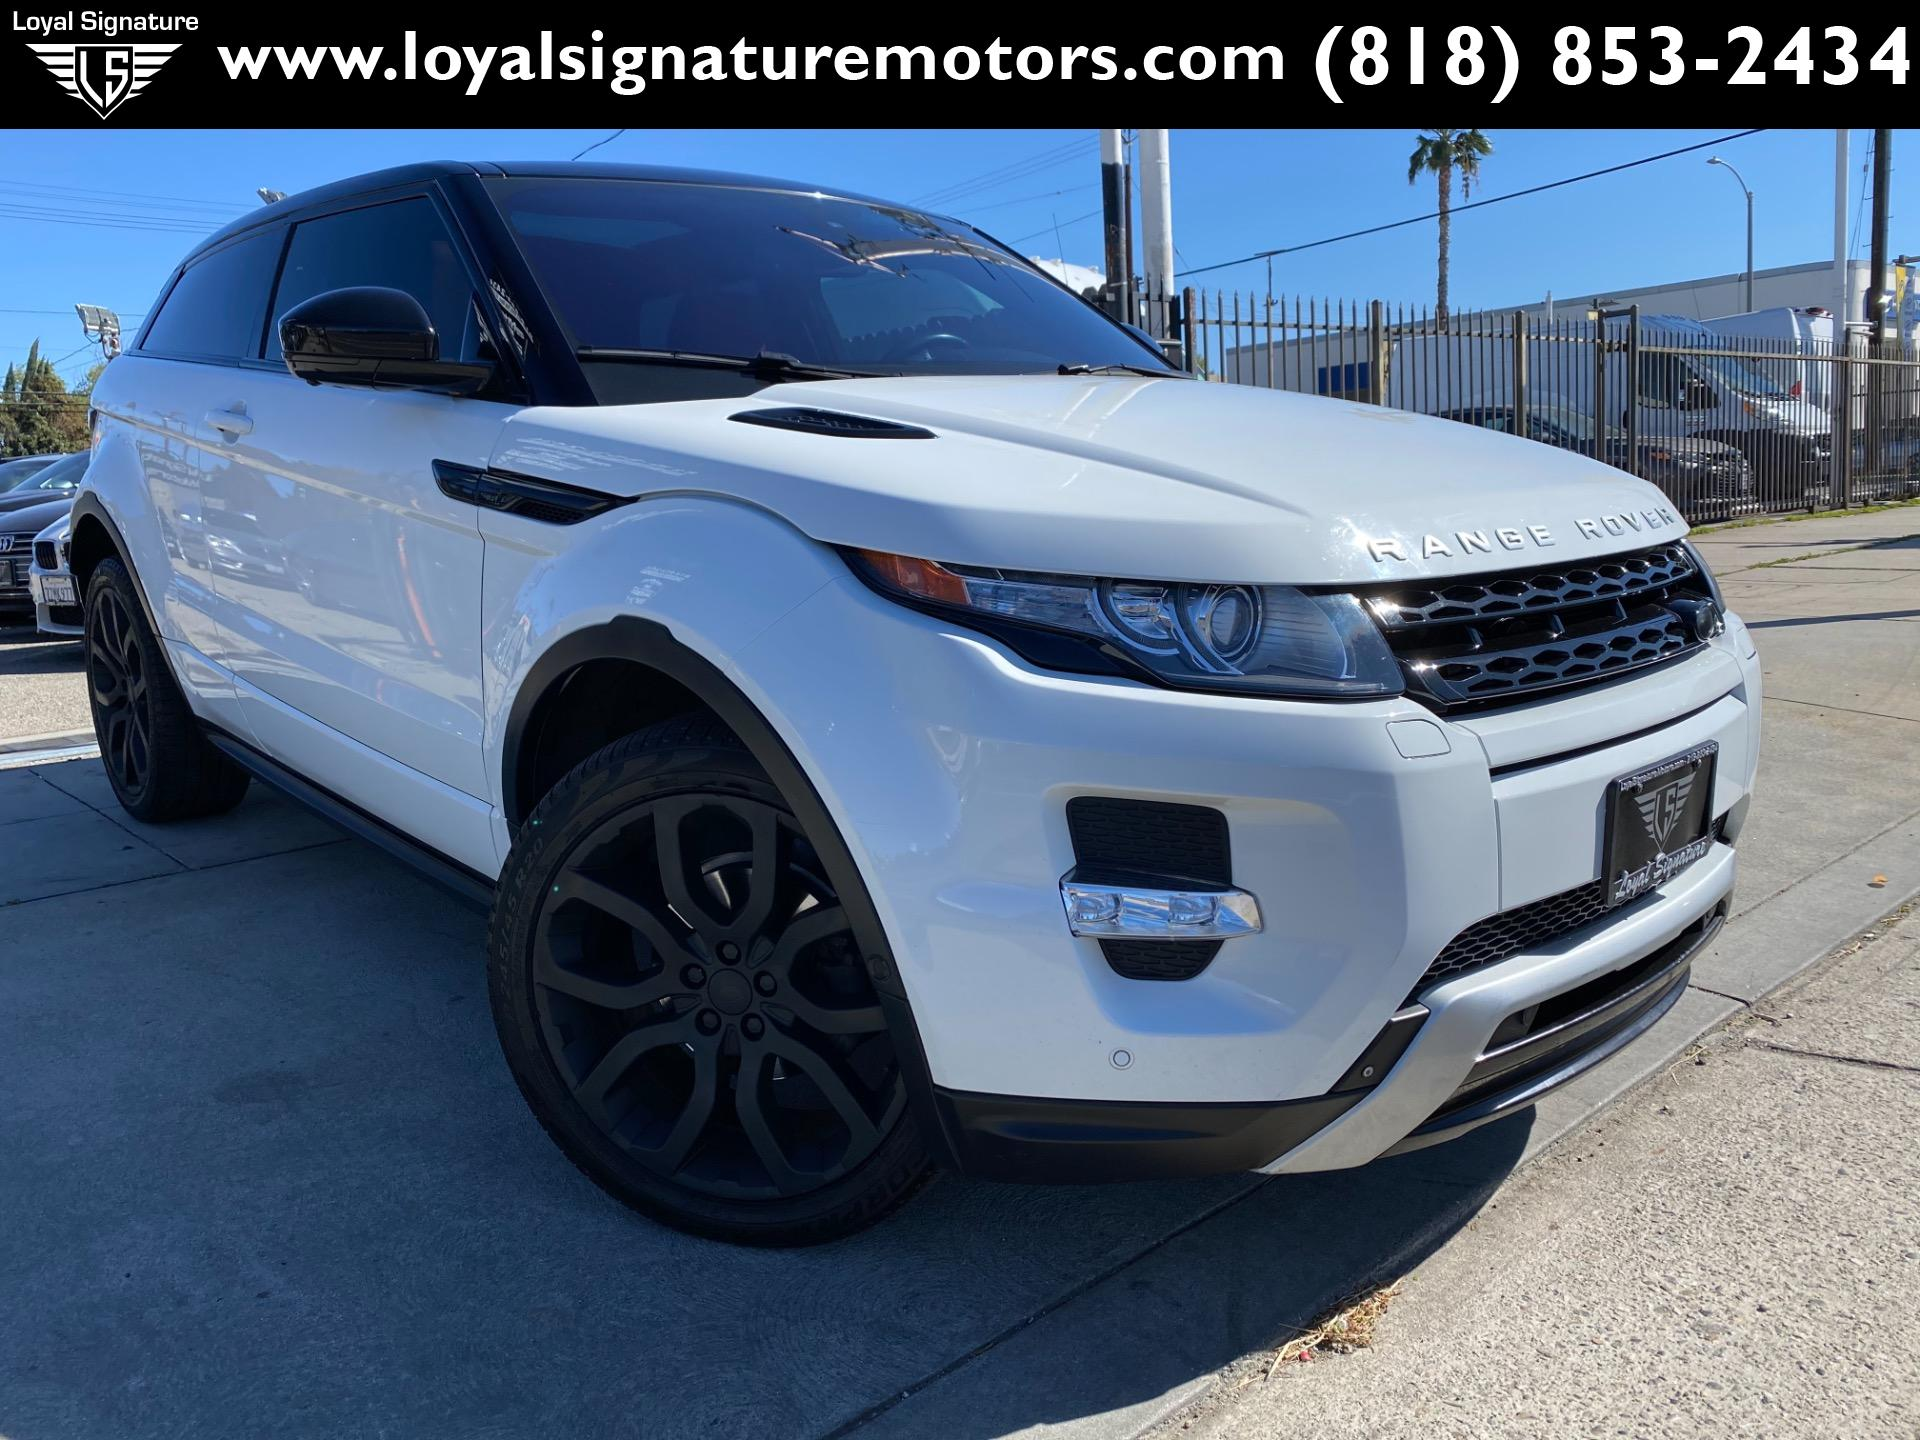 Used 2015 Land Rover Range Rover Evoque Coupe Dynamic | Van Nuys, CA